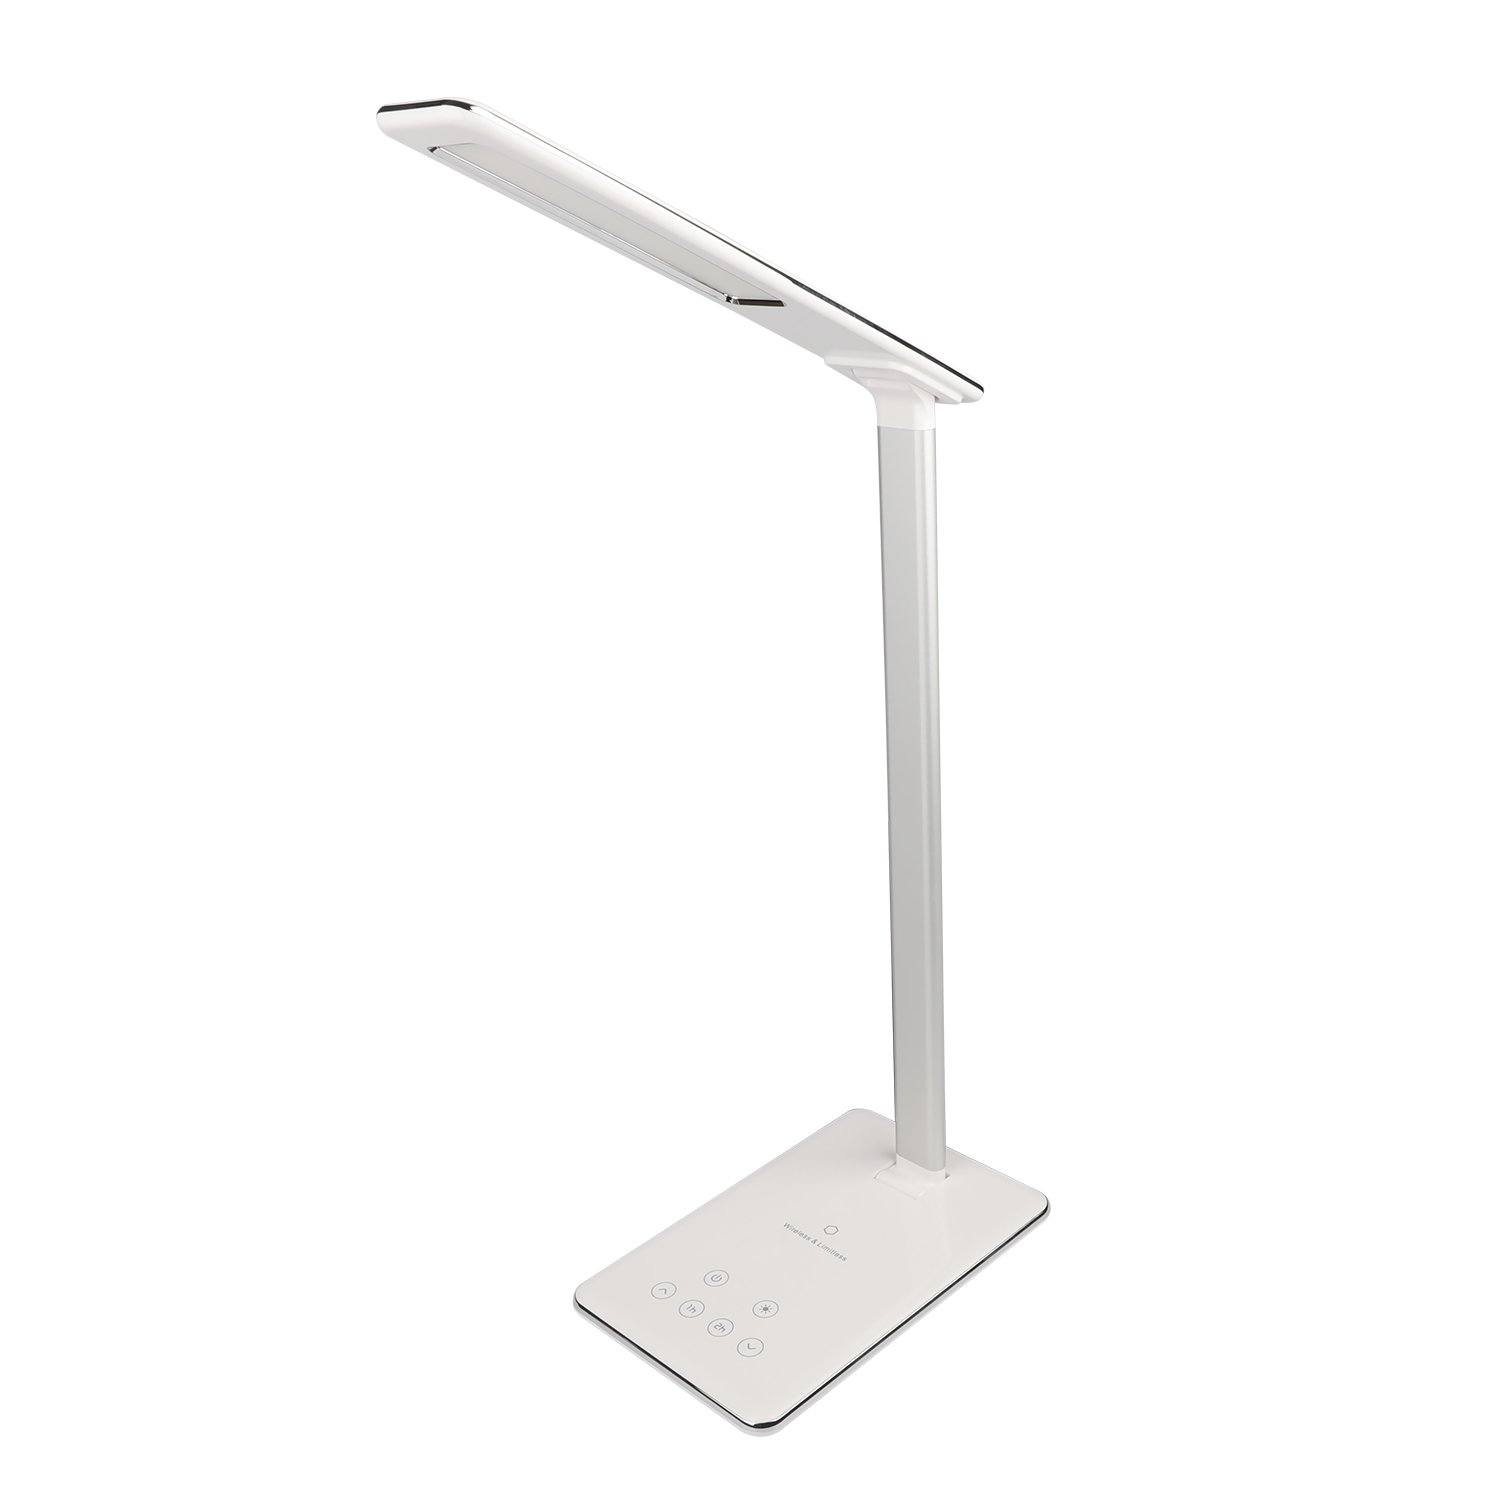 MACASA Led Desk Lamp Dimmable Table Lamp with Qi Wireless Charger for iPhone X / 8 Plus,4 Color Temperatures 6 Adjustable Brightness,Timer Setting,USB Charging Port,Touch Control& Memory Function